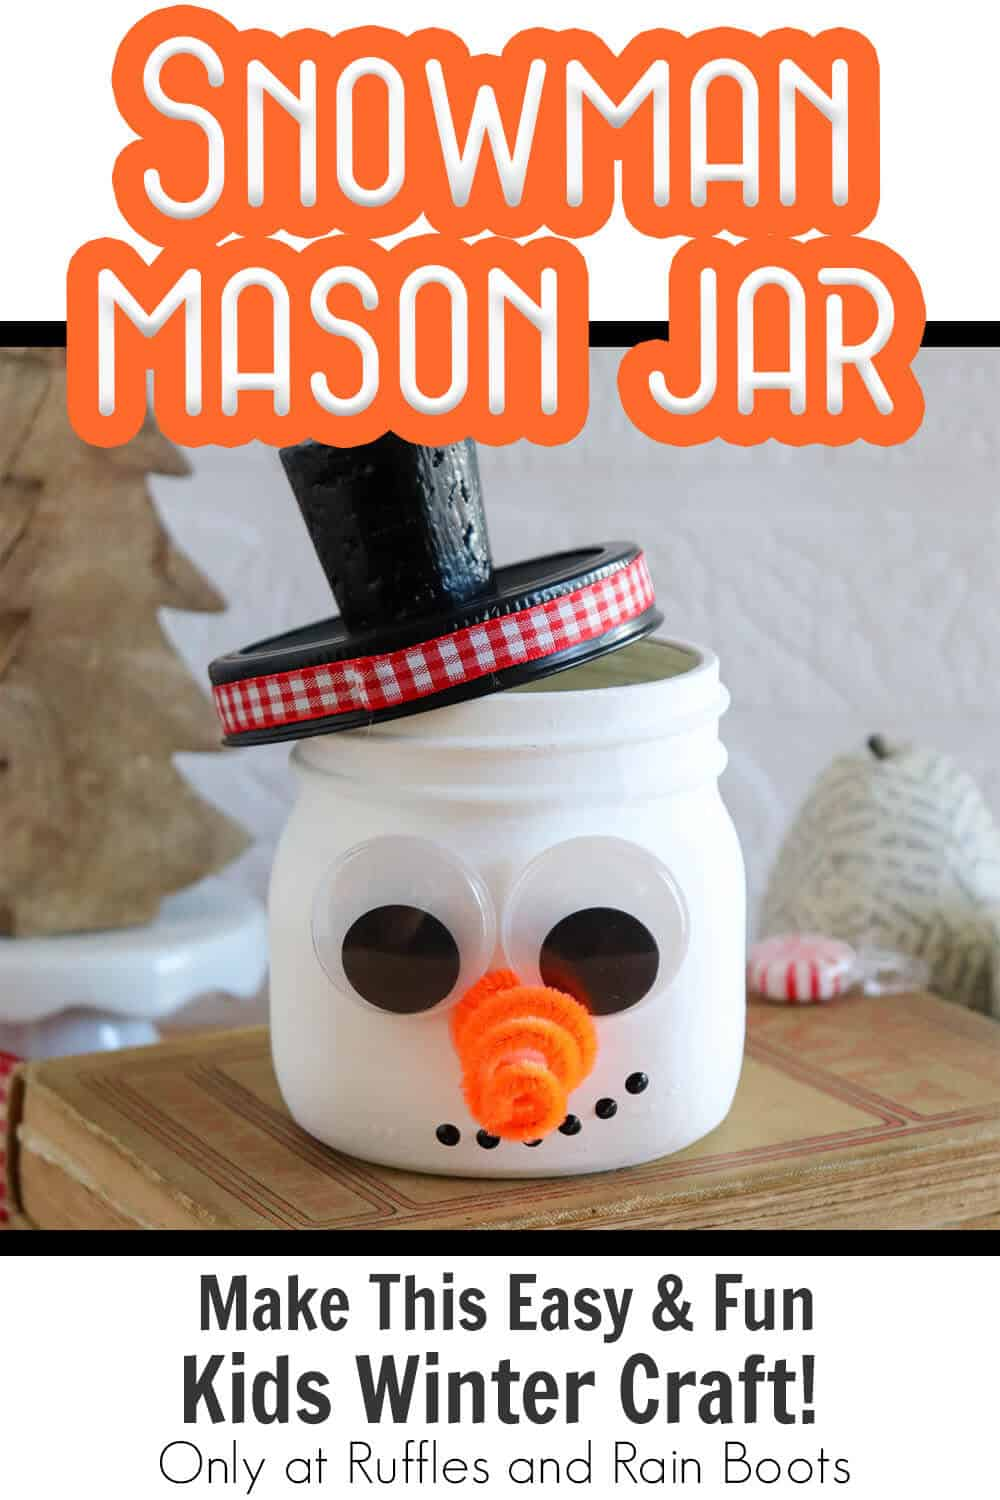 kid-made painted jar craft for kids with text which reads snowman mason jar make this easy & fun kids winter craft!